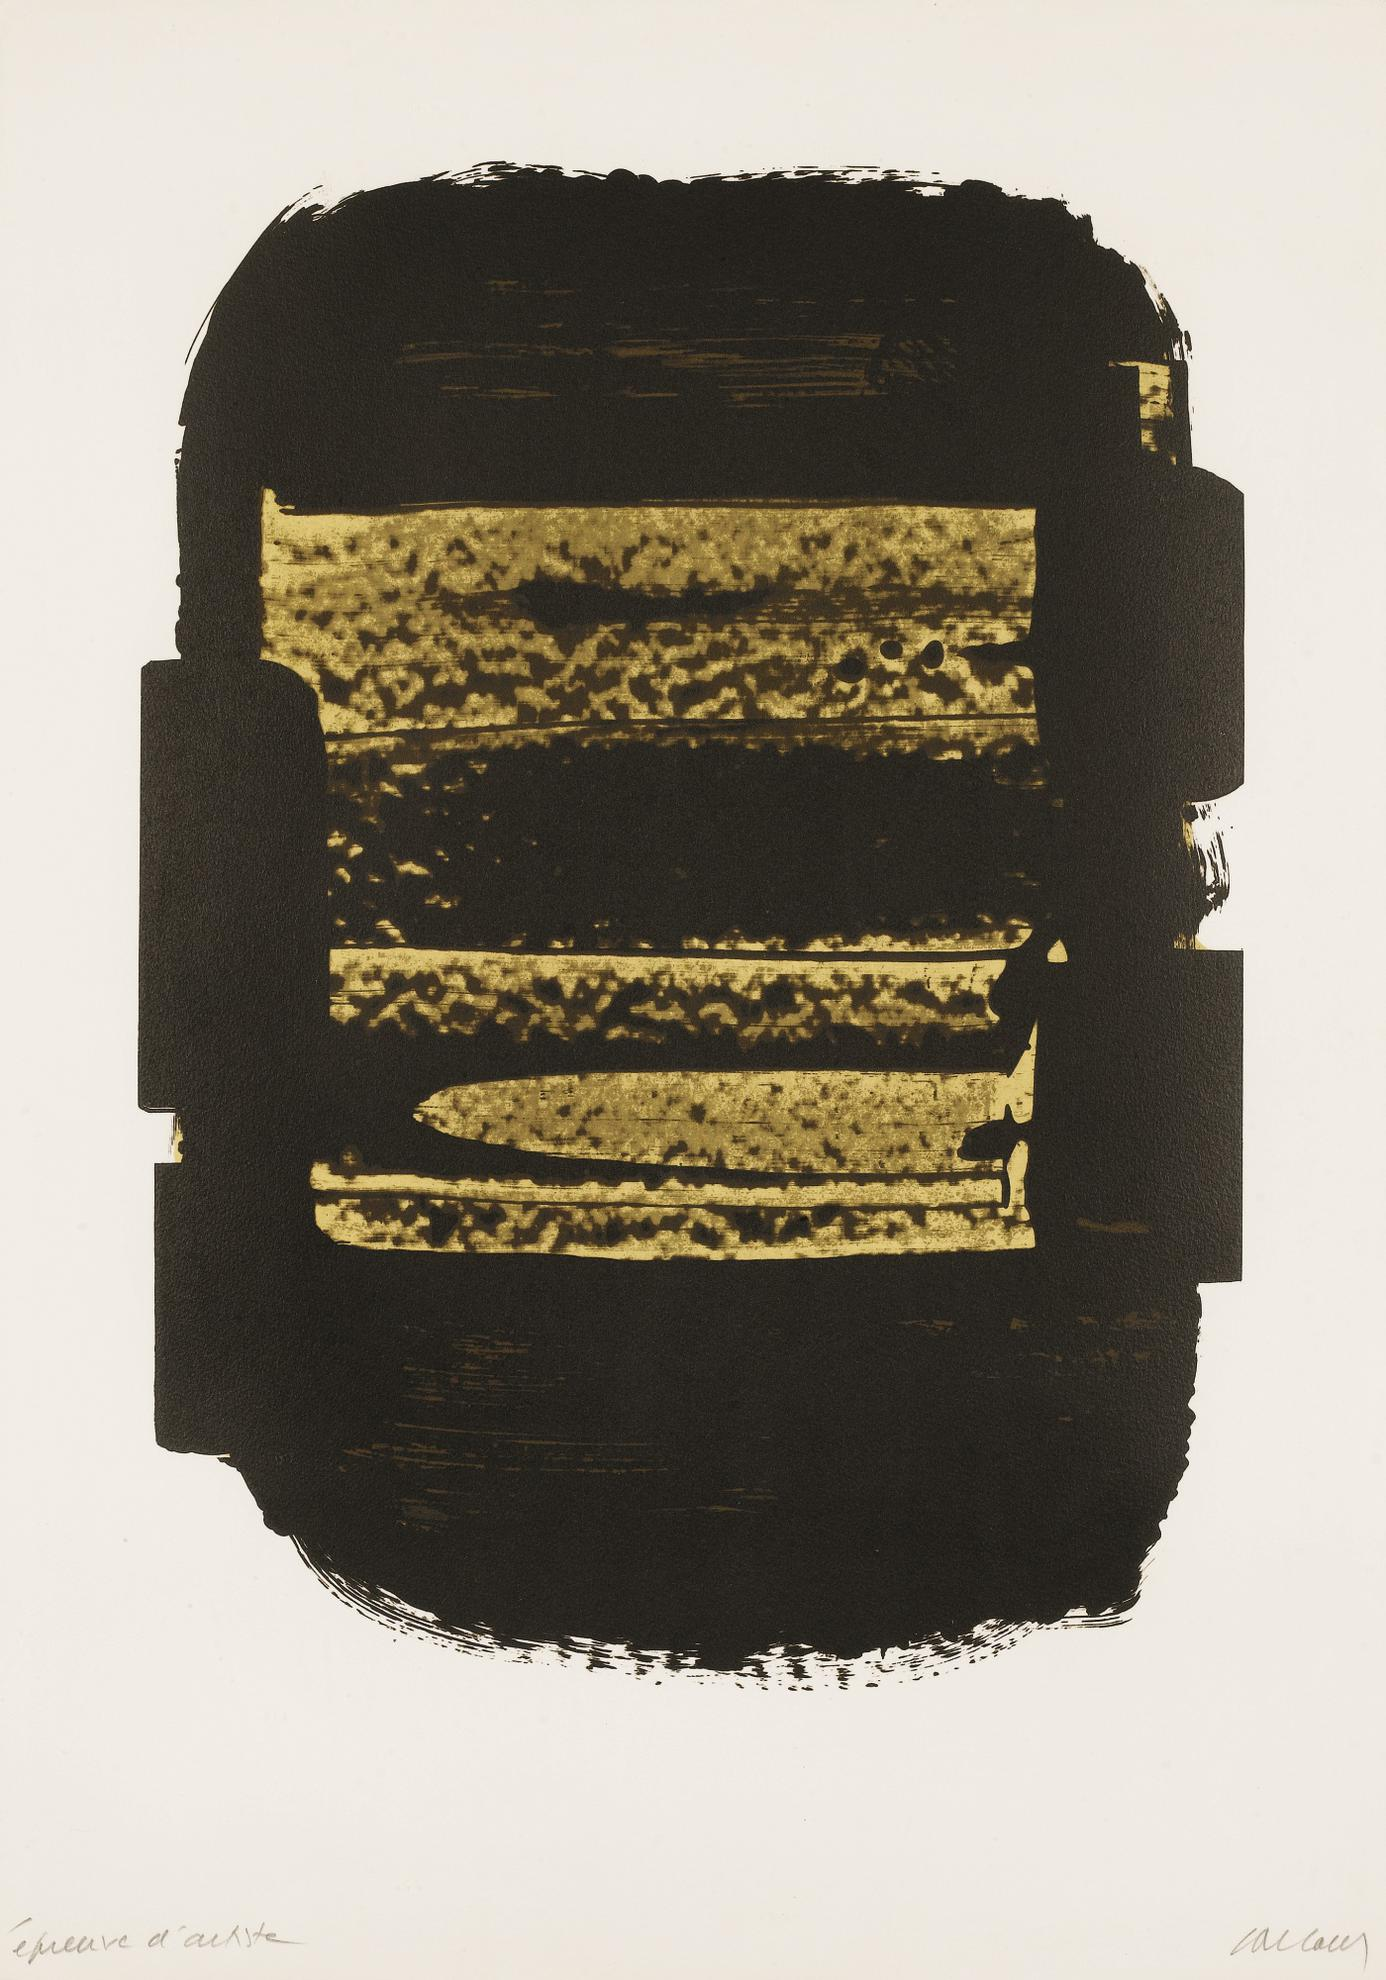 Pierre Soulages-Lithographie 41-1979